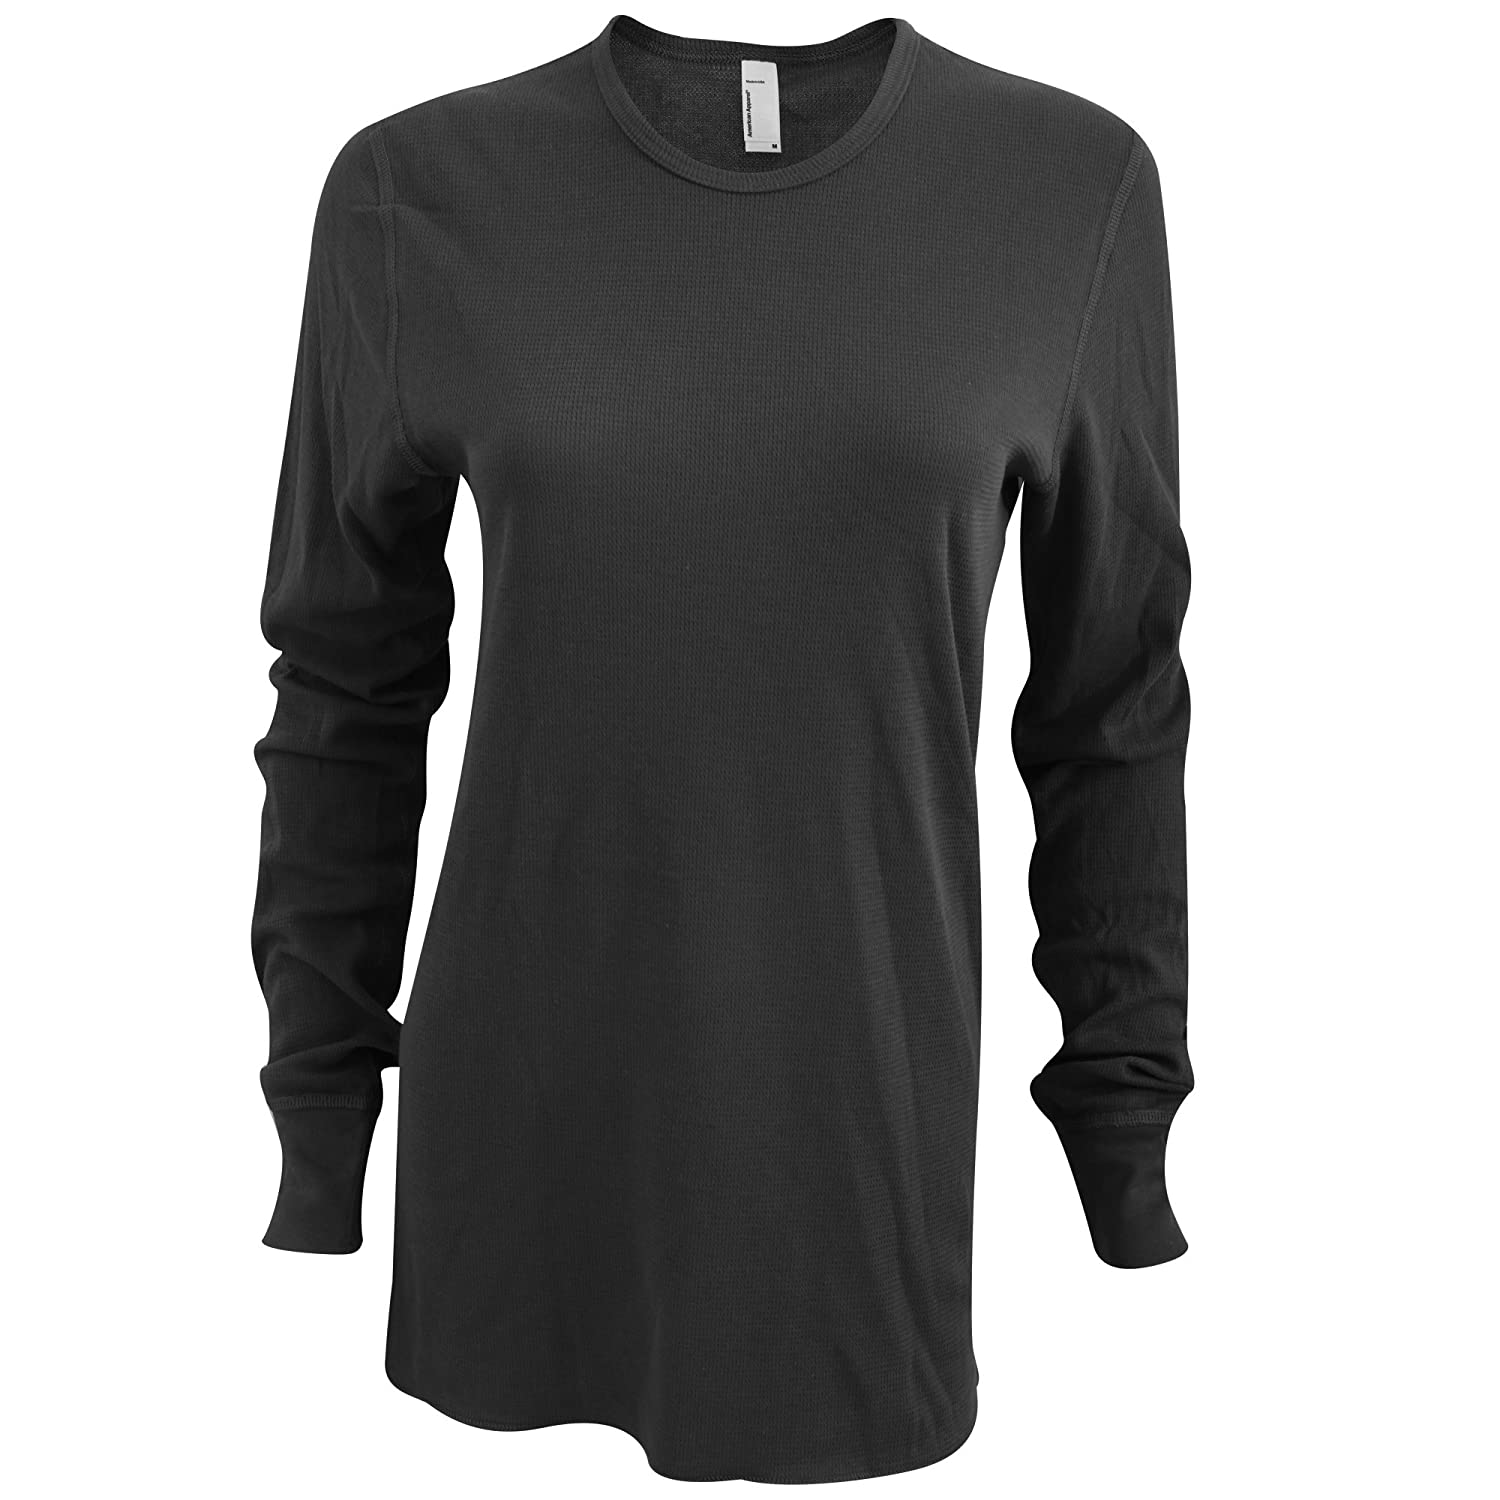 American Apparel Unisex Baby Thermal Long Sleeve T-Shirt -2XL- -Black-